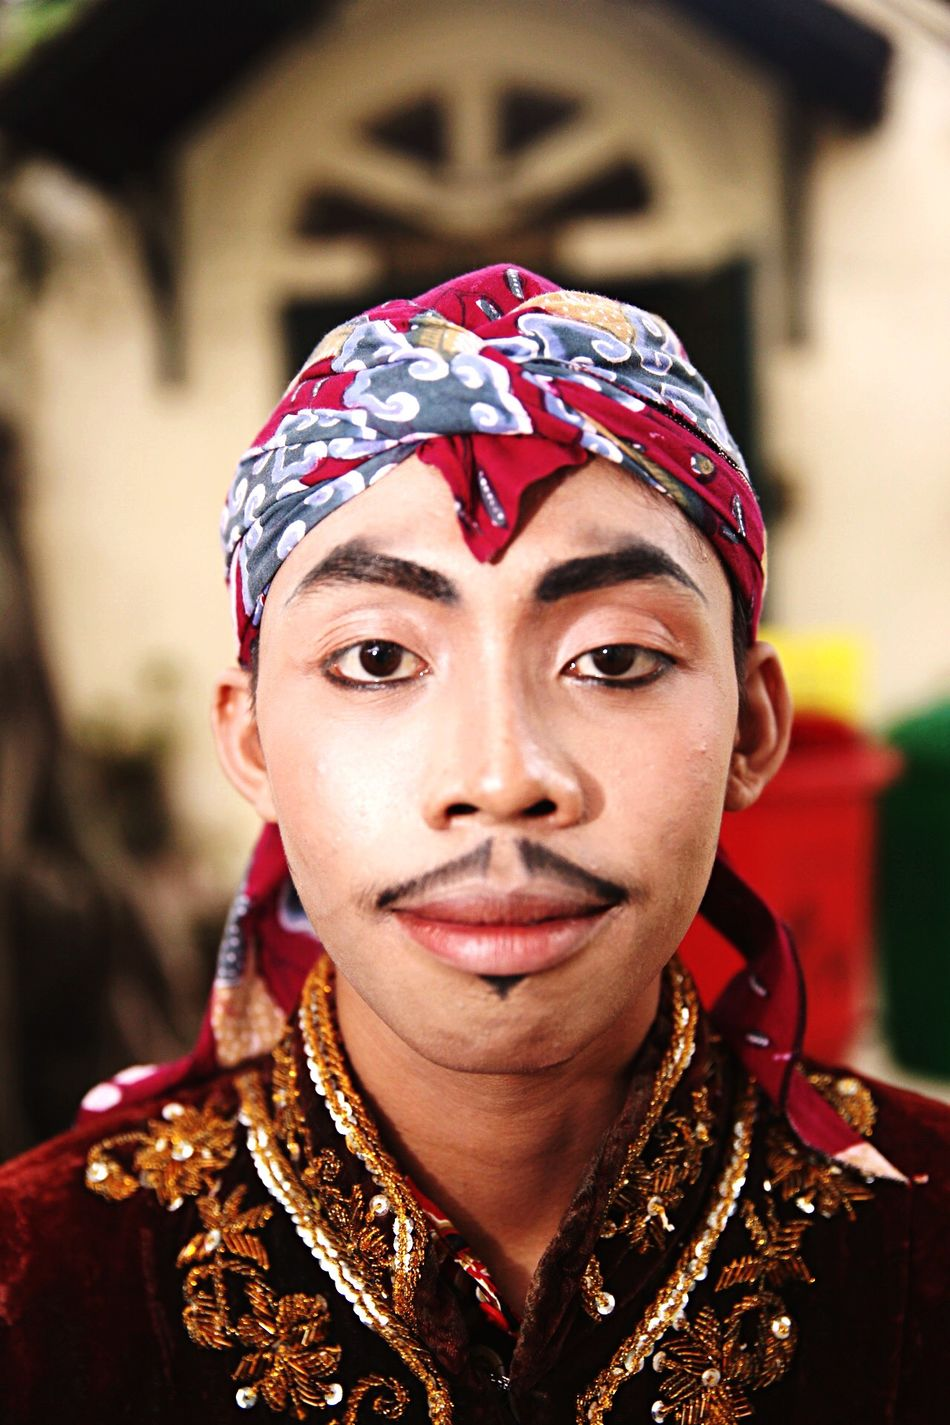 """The Cirebon people referring to themselves as """"wong Jawa"""" and to their language as """"basa Jawa"""" (""""Javanese""""). The language spoken by the Cirebonese is a mixture of Javanese and Sundanese language, with a heavier influence from Javanese. Generally Cirebonese can be considered as an Independent language outside Javanese and Sundanese. Photojournalism Wonderful Indonesia Enjoying Life Pesonaindonesia Pesona Indonesia EyeEm Indonesia Tourism Cirebon Culture Cirebon  Nusantara Culture Indonesia_photography"""